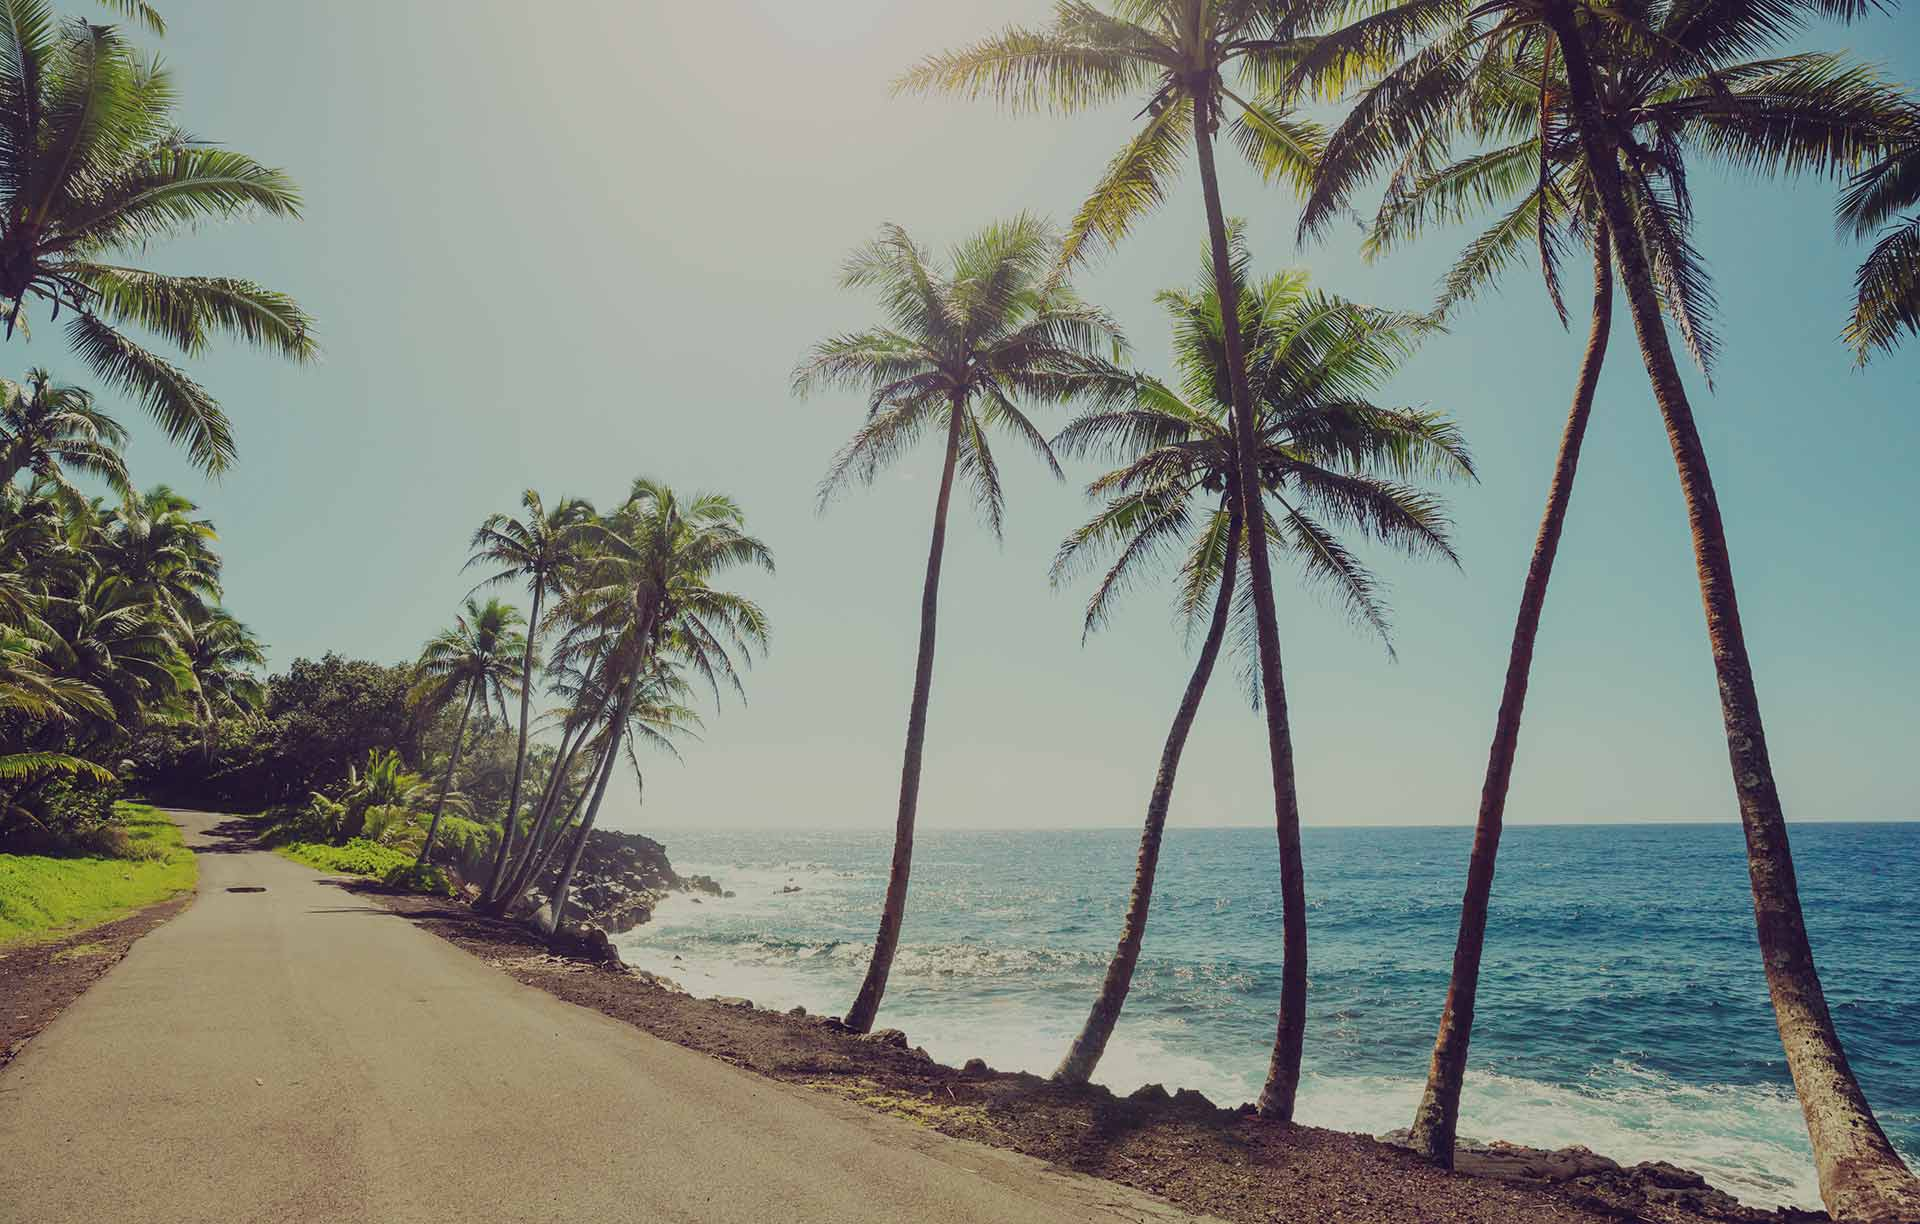 palm trees and beach